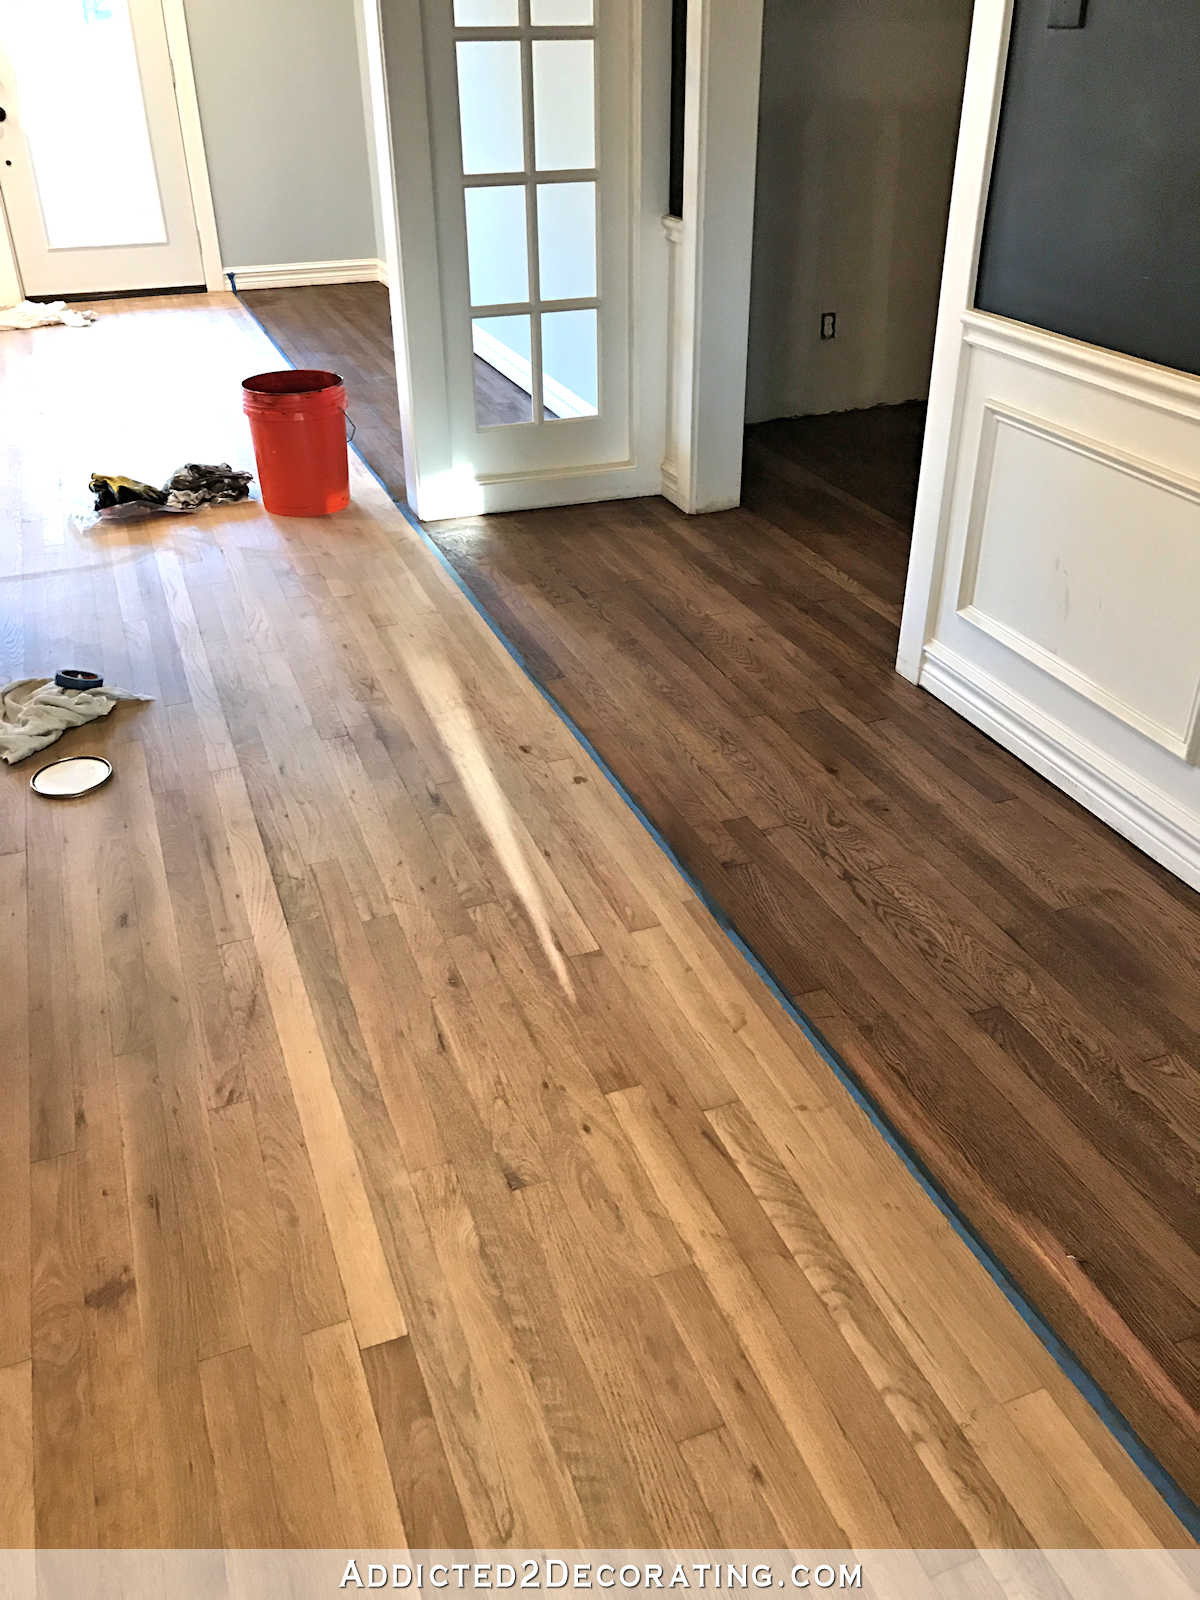 different types of hardwood floors in house of adventures in staining my red oak hardwood floors products process within staining red oak hardwood floors 6 stain on partial floor in entryway and music